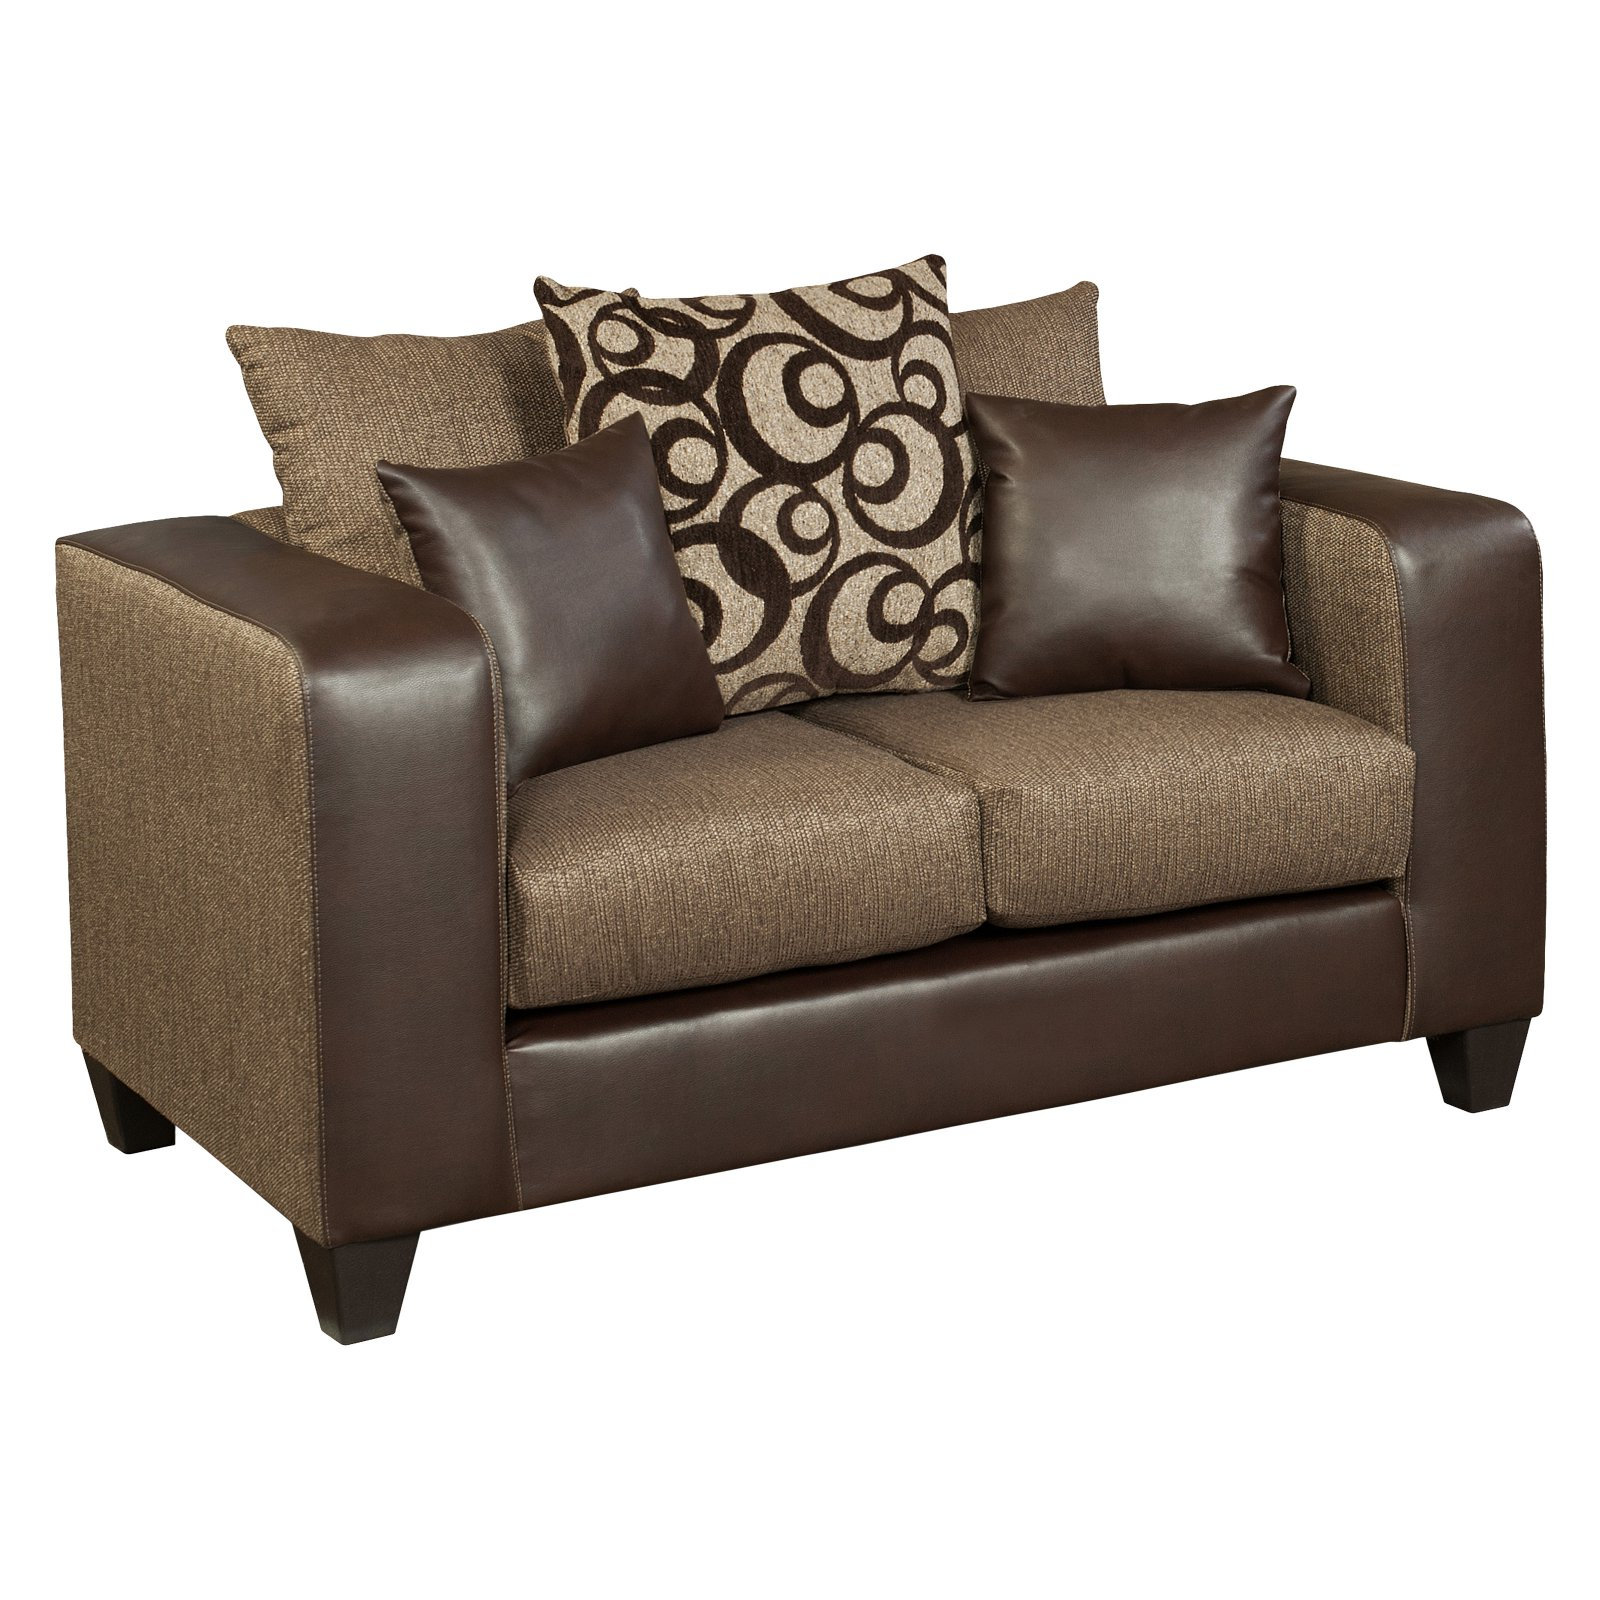 Flash Furniture Riverstone Object Chenille Loveseat